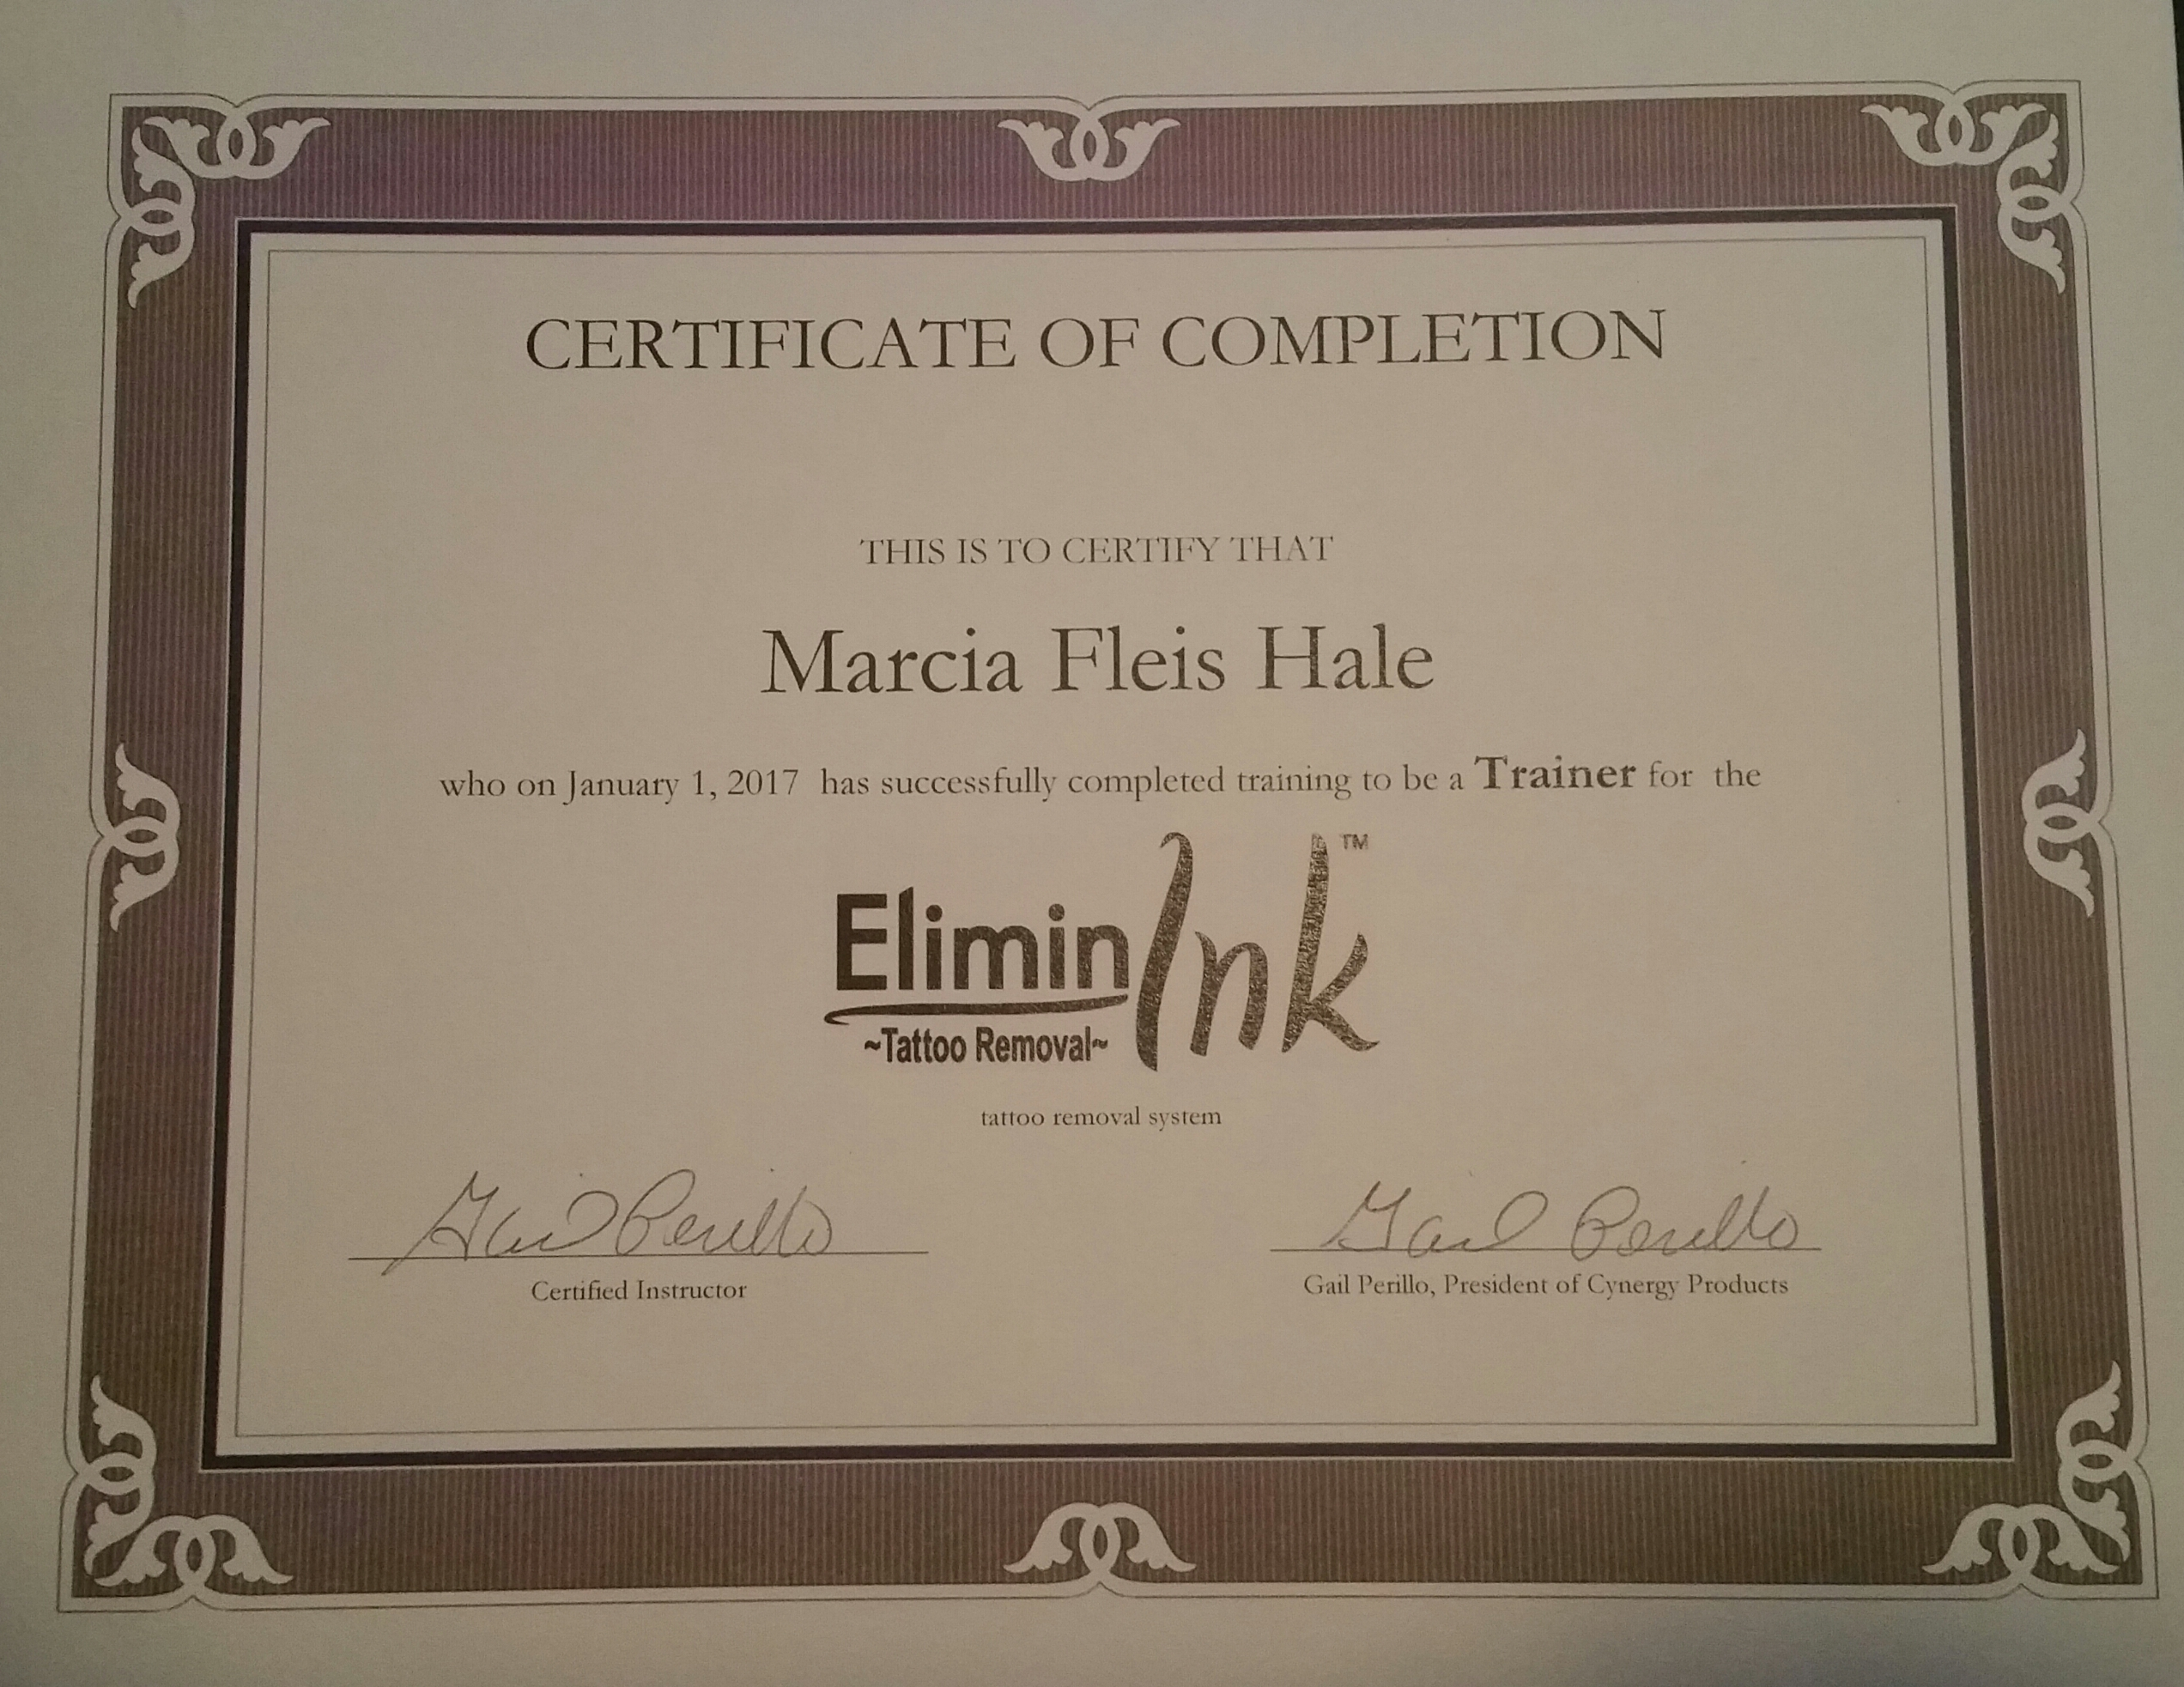 Eliminink Tattoo Removal Trainer